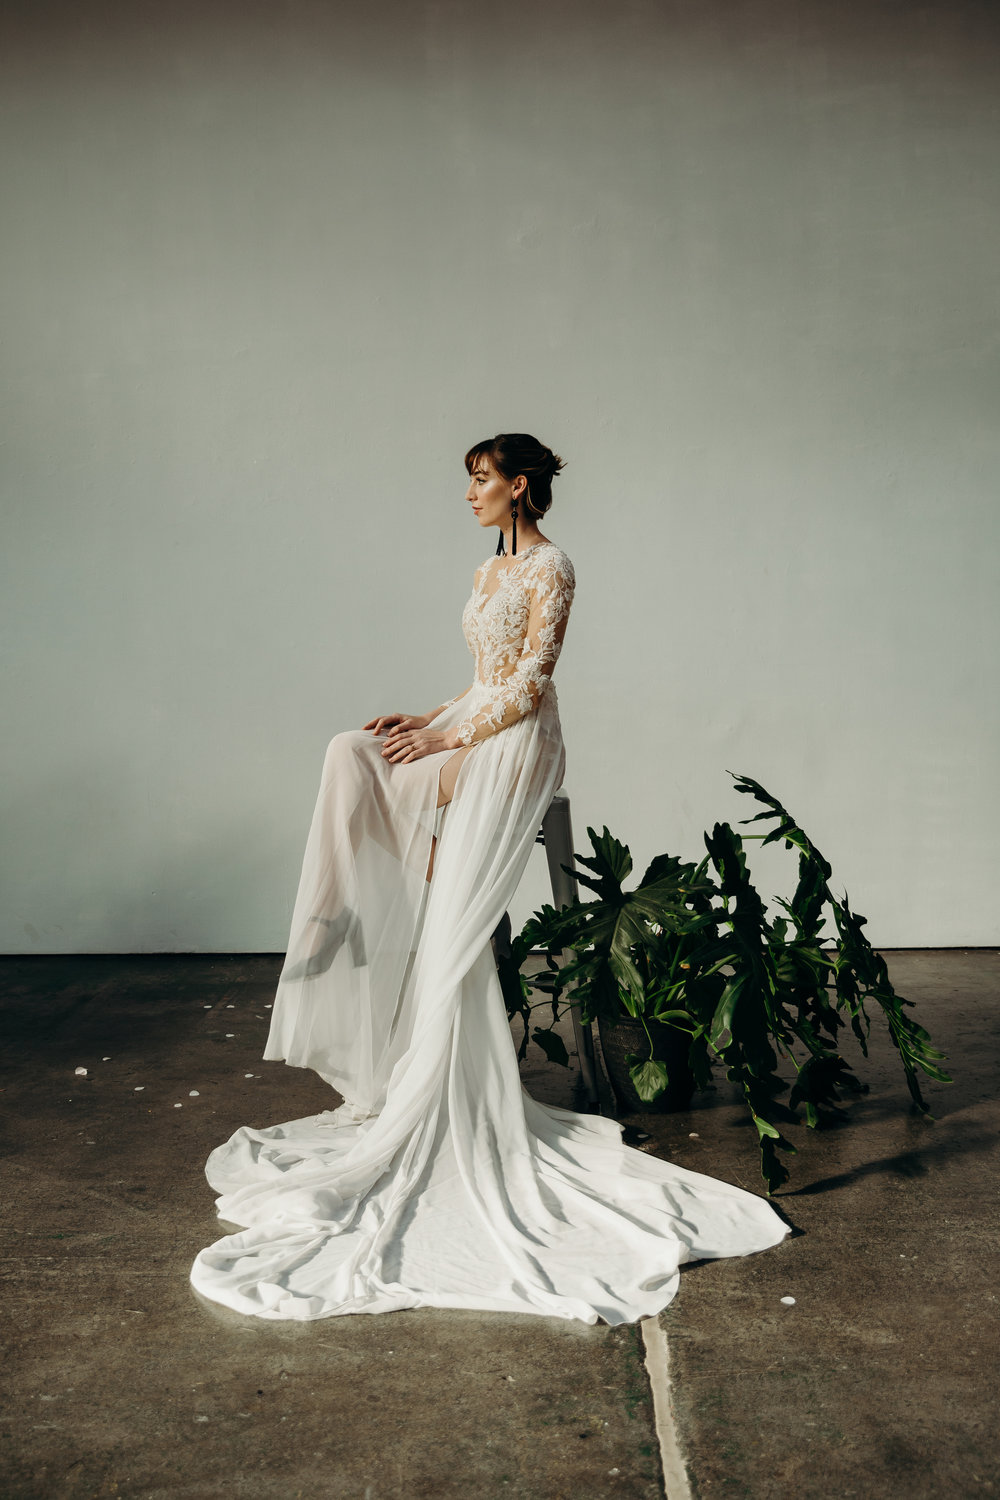 MINIMAL, CHIC + STATUESQUE. - EDITORIAL SHOTS IN AN INDUSTRIAL WAREHOUSE.